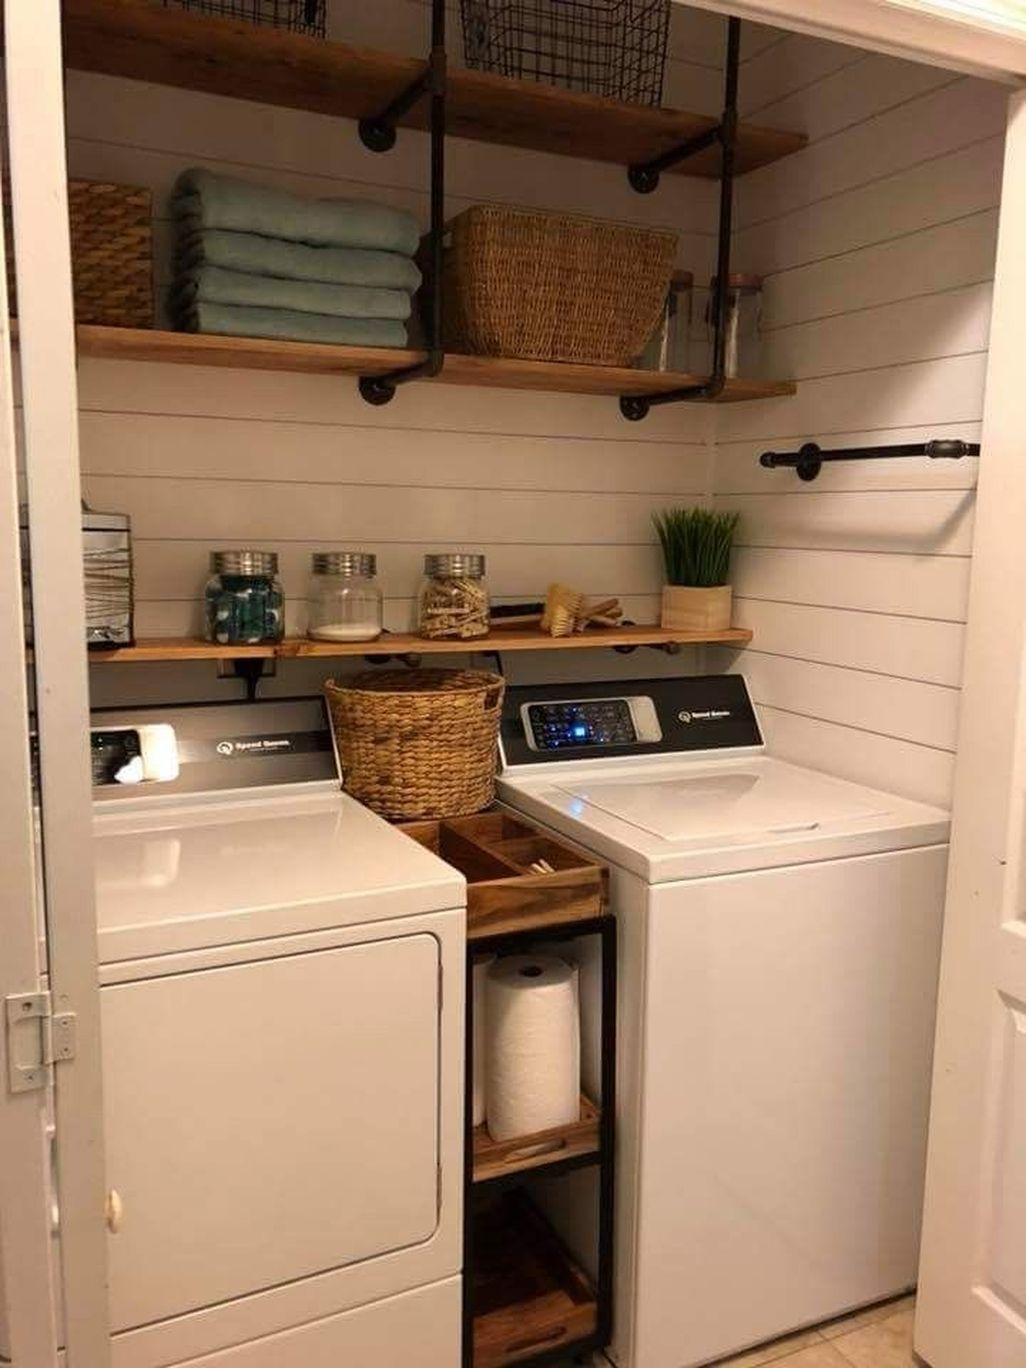 Modern Bat Remodel Laundry Room Ideas 01